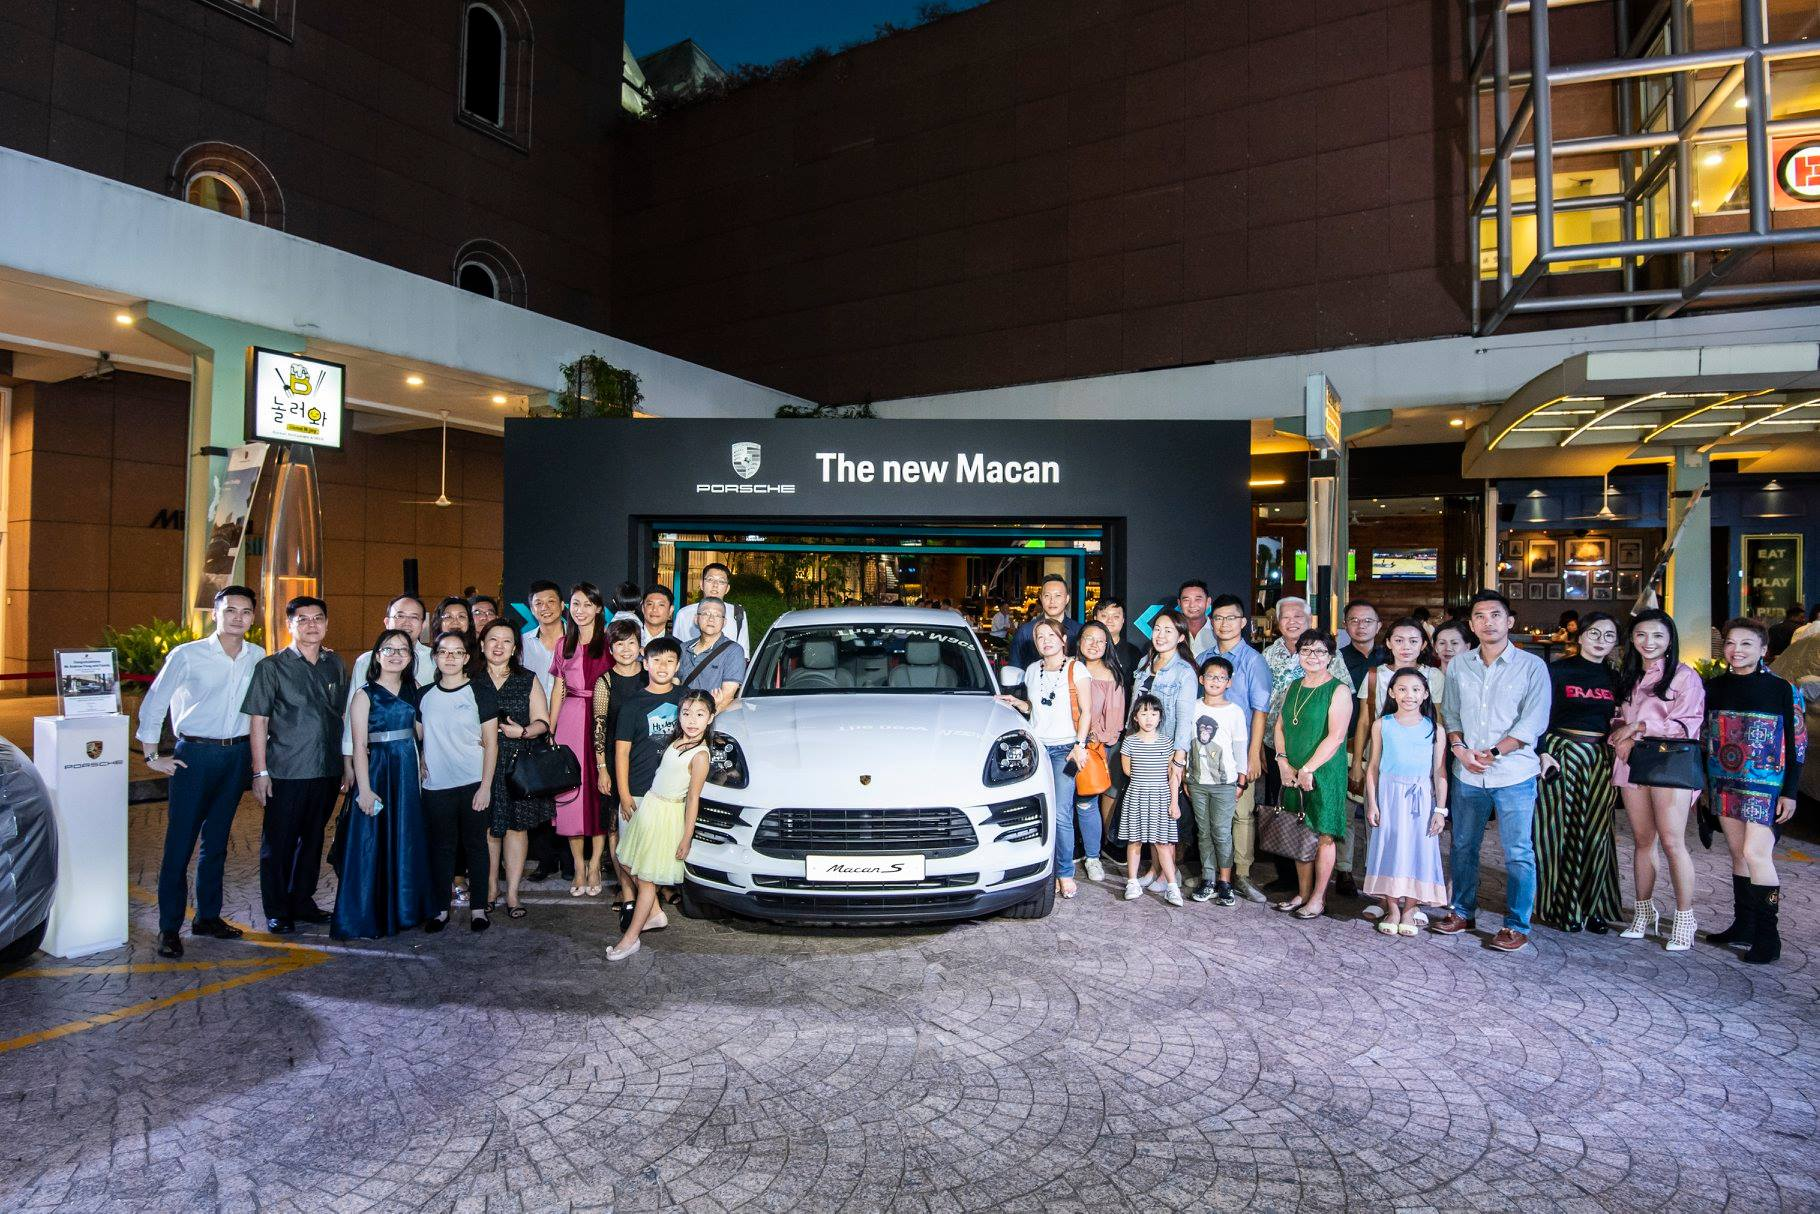 Owners of the new Porsche Macan gathered for a group photoshoot